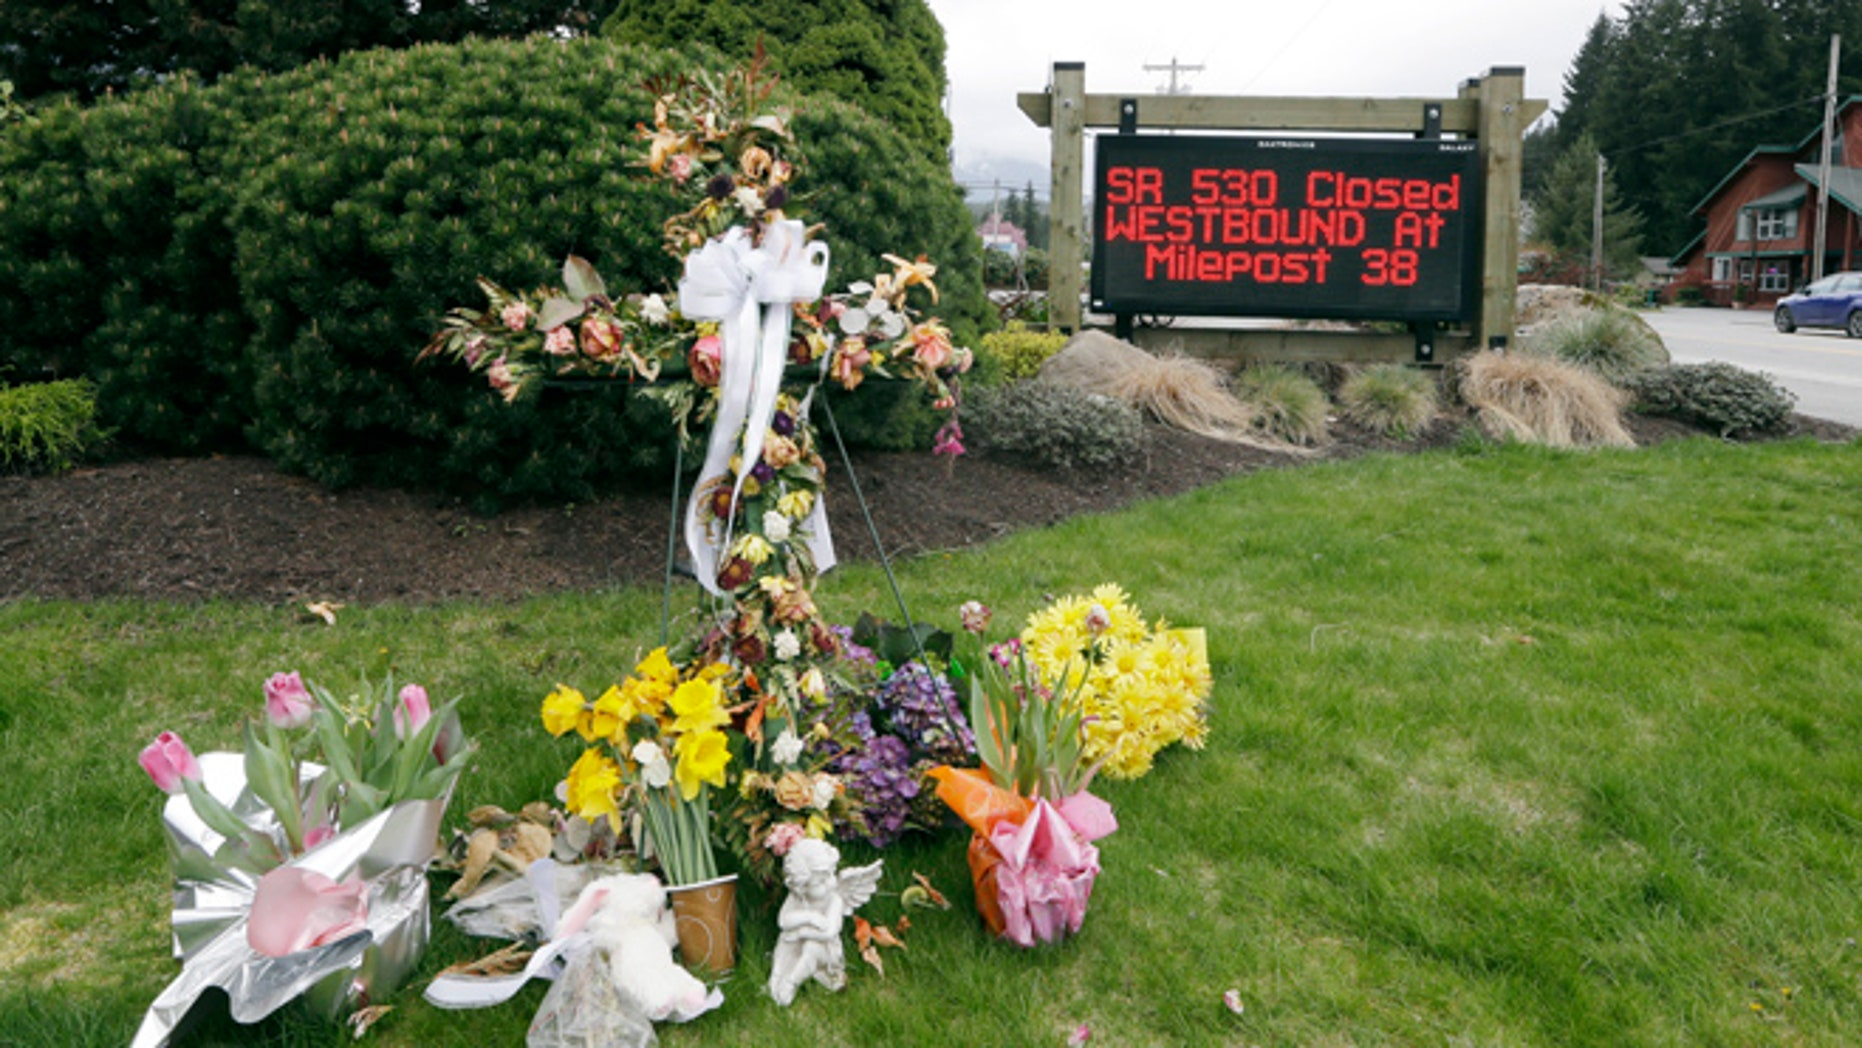 Apr. 15, 2014: A road sign advising the closure of Highway 530 stands near a small display of flowers and a cross in Darrington, Wash.